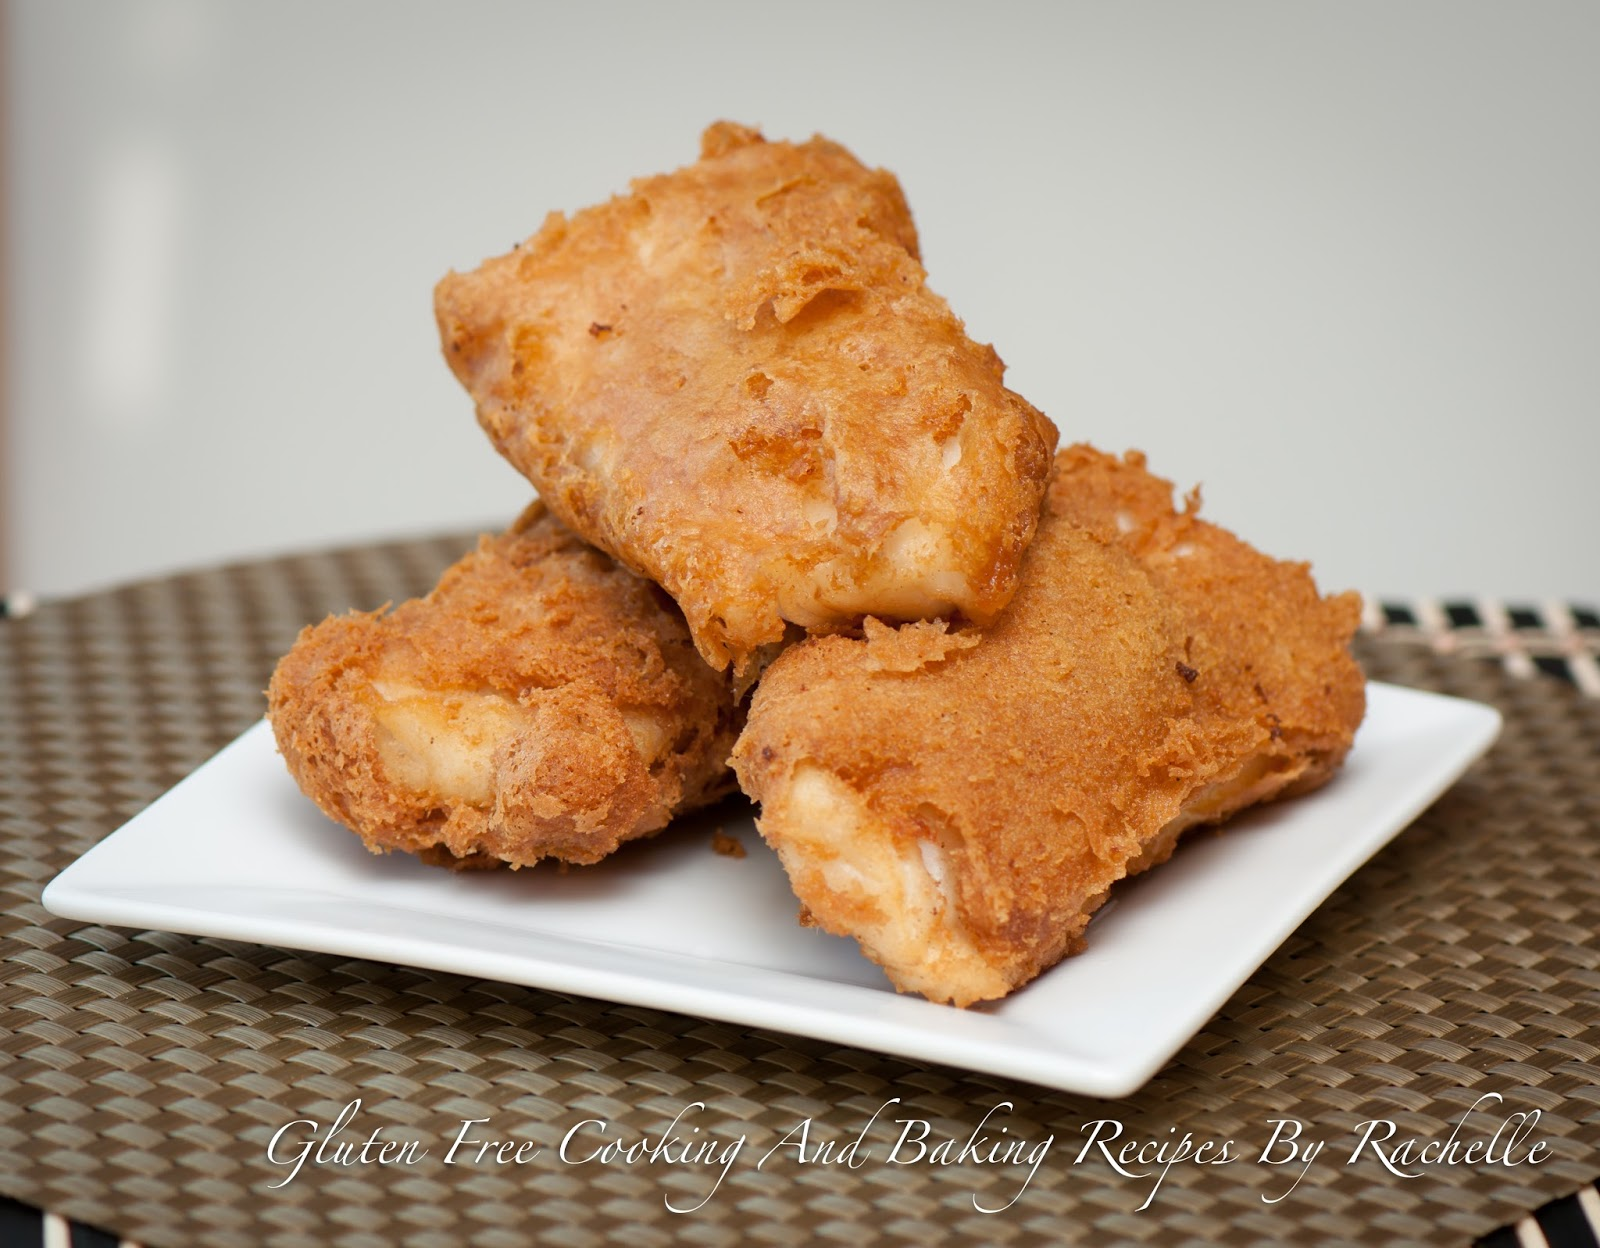 Gluten Free Baking By Rachelle Gluten Free Deep Fried Fish